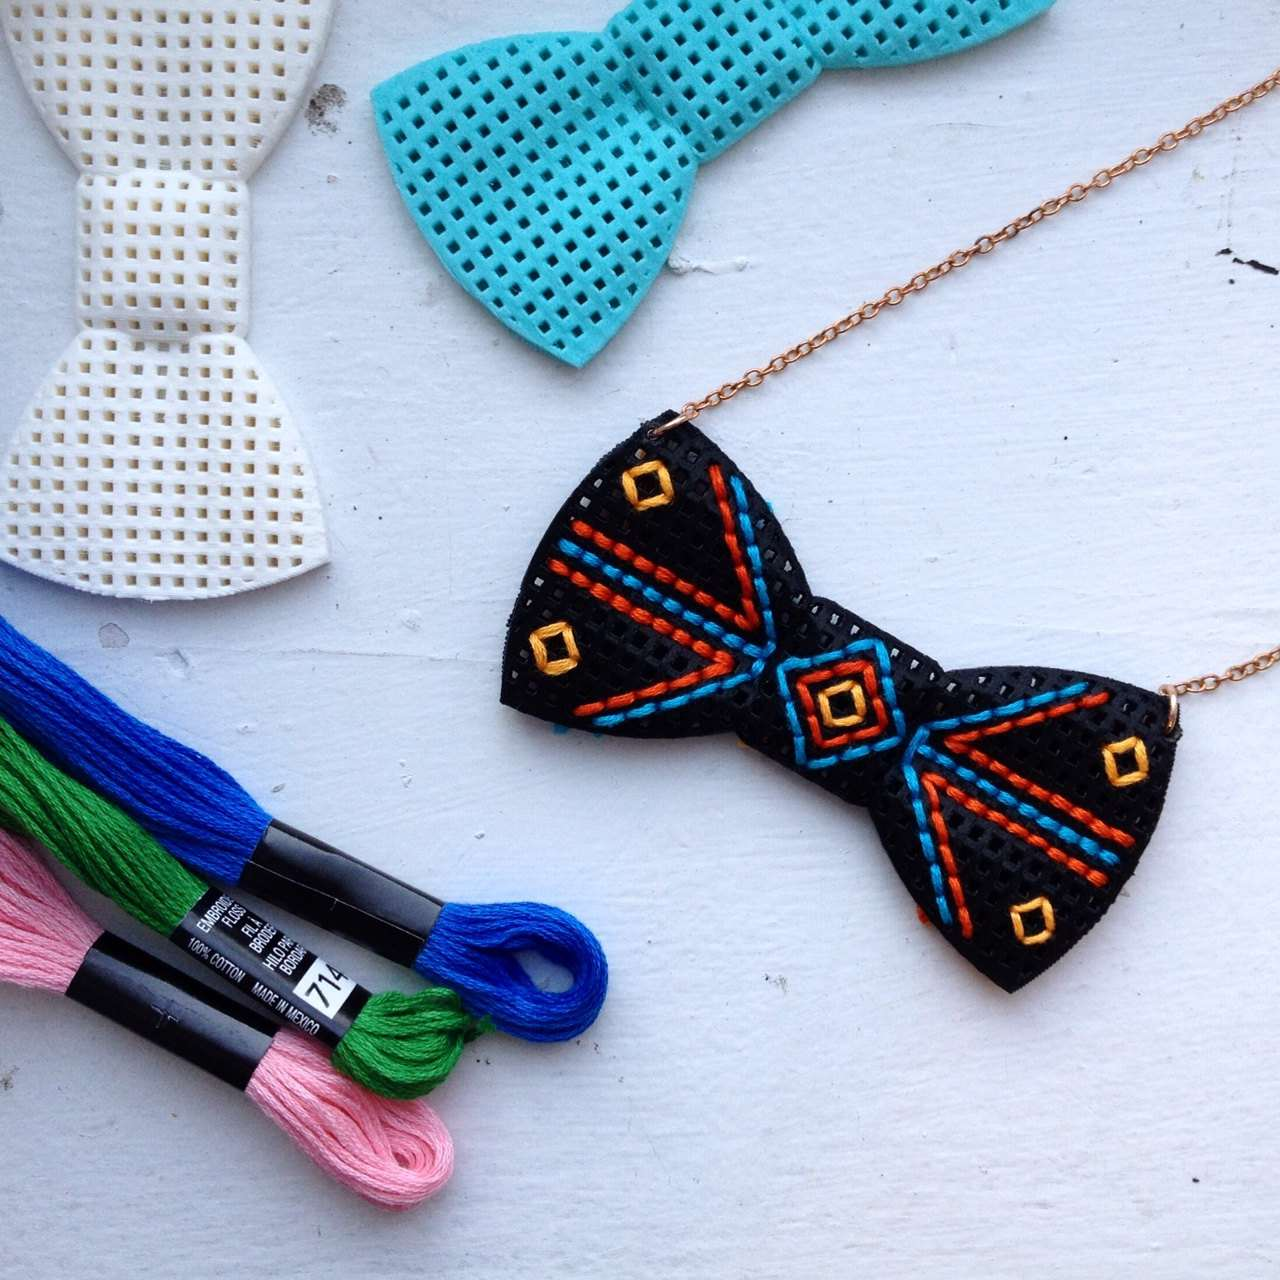 3D Printed Stitchable Bow Tie Kit